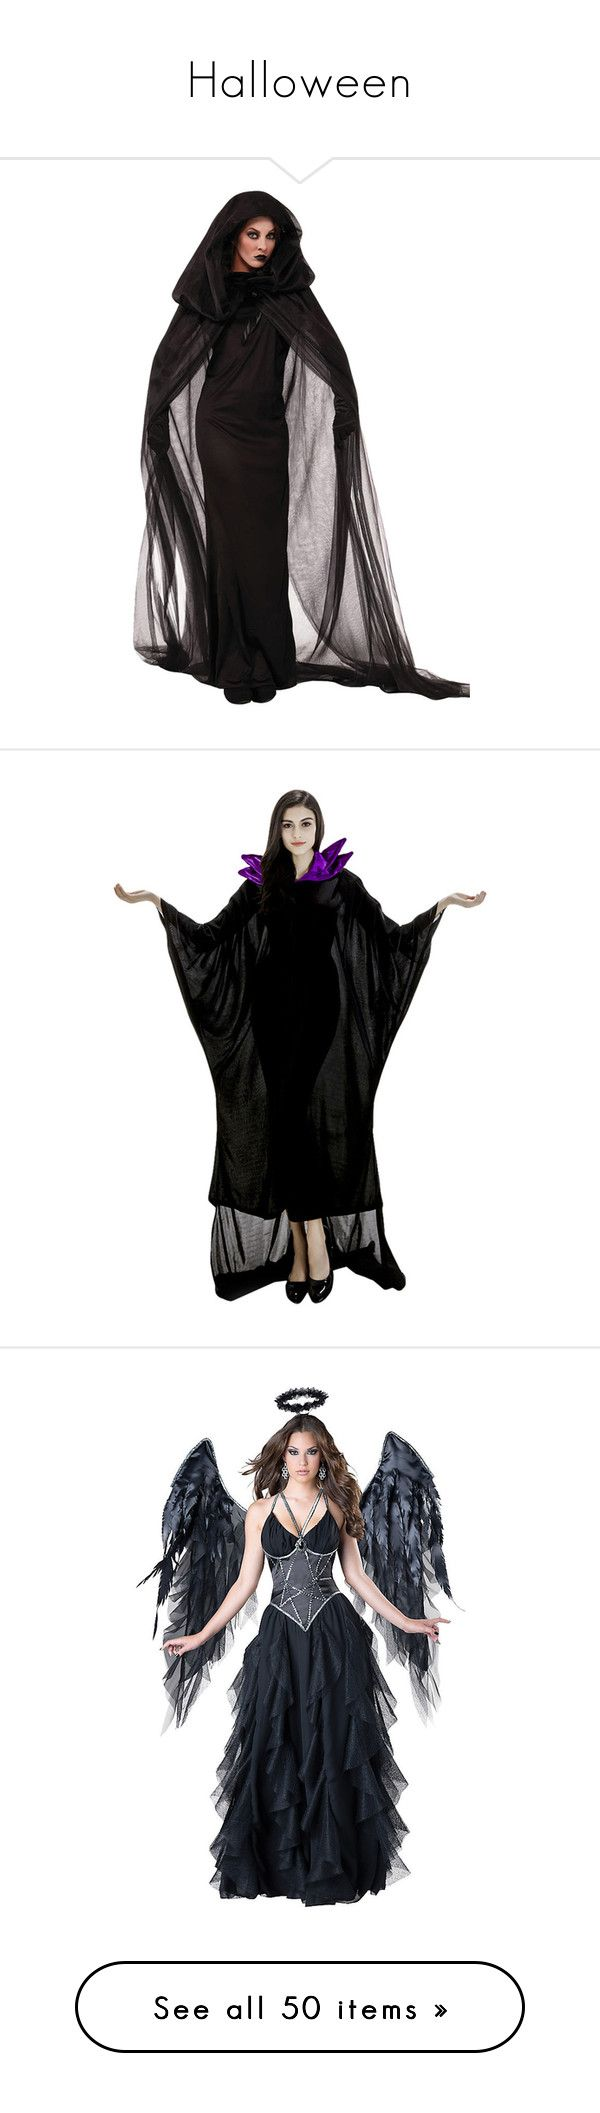 halloween by pokemongirl123 liked on polyvore featuring costumes halloween dresses - Salem Witch Halloween Costume